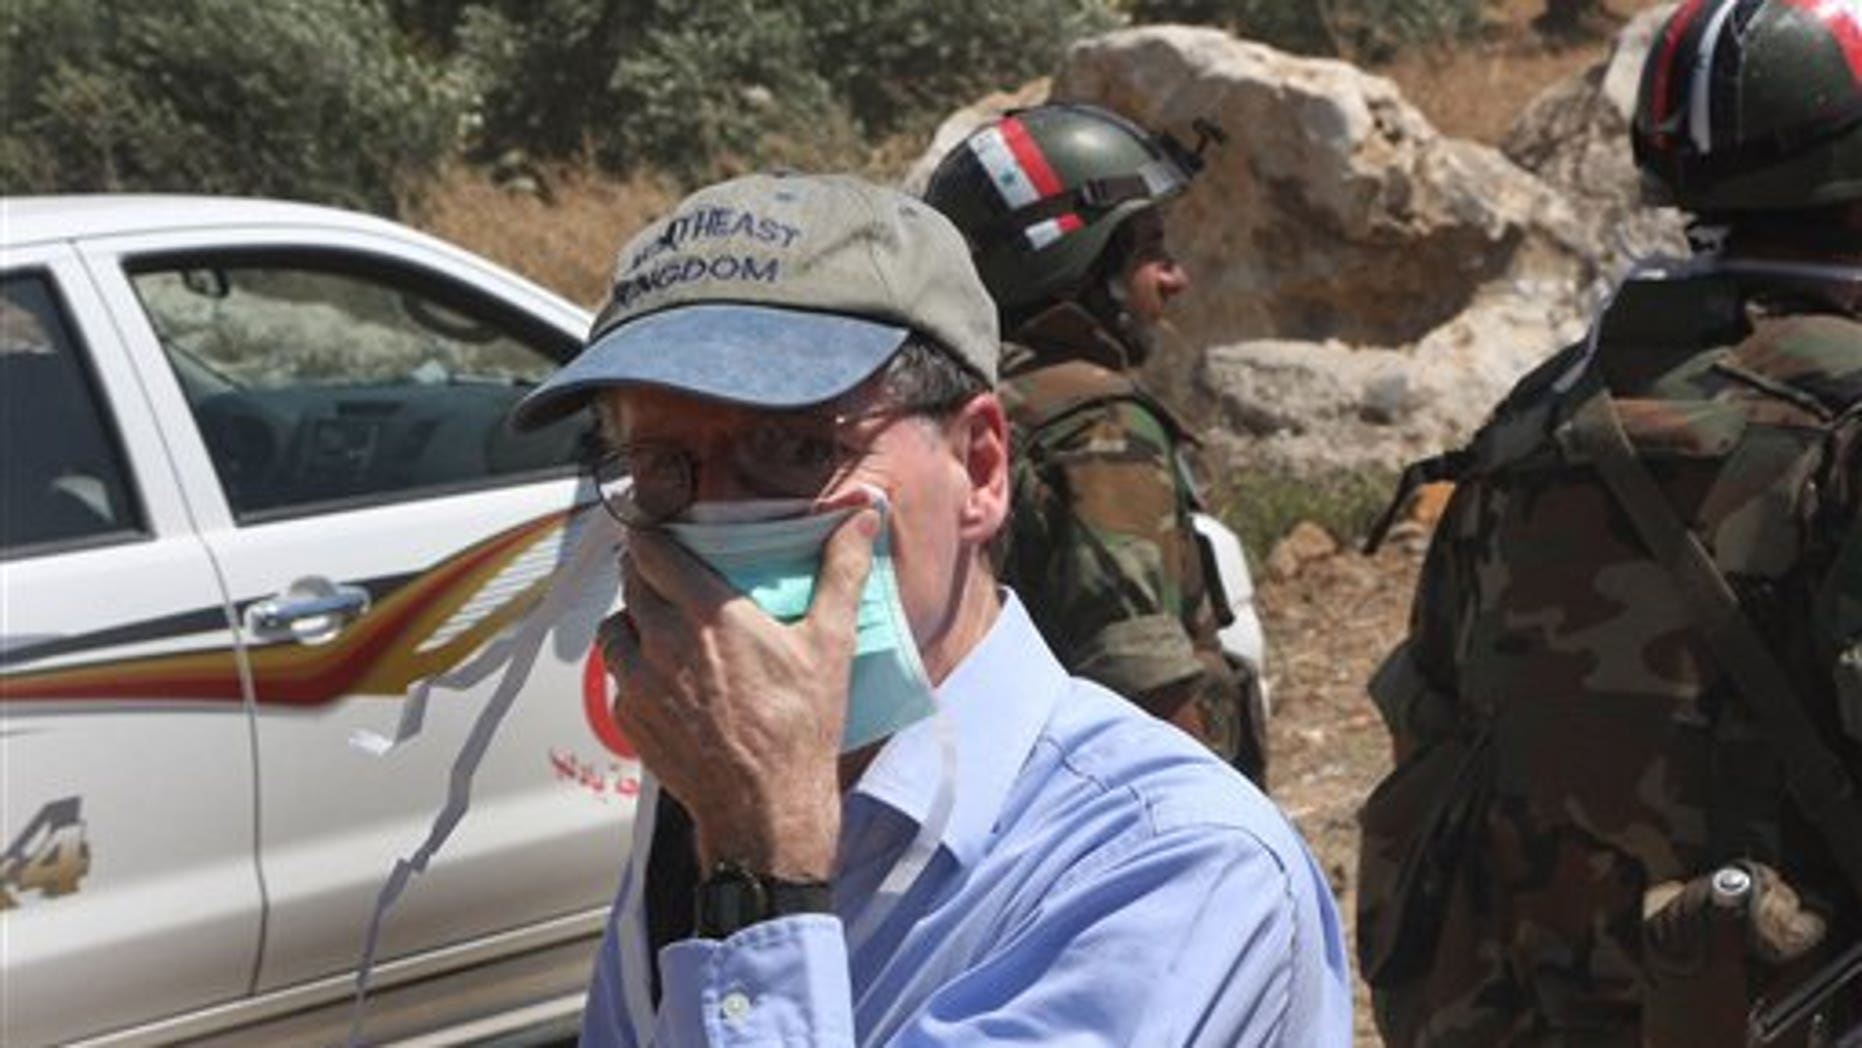 June 20, 2011: US Ambassador to Syria Robert Ford covers his nose from the smell of dead bodies during his visit with other foreign diplomats to a mass grave in Jisr el-Shughour in northwestern Syria.